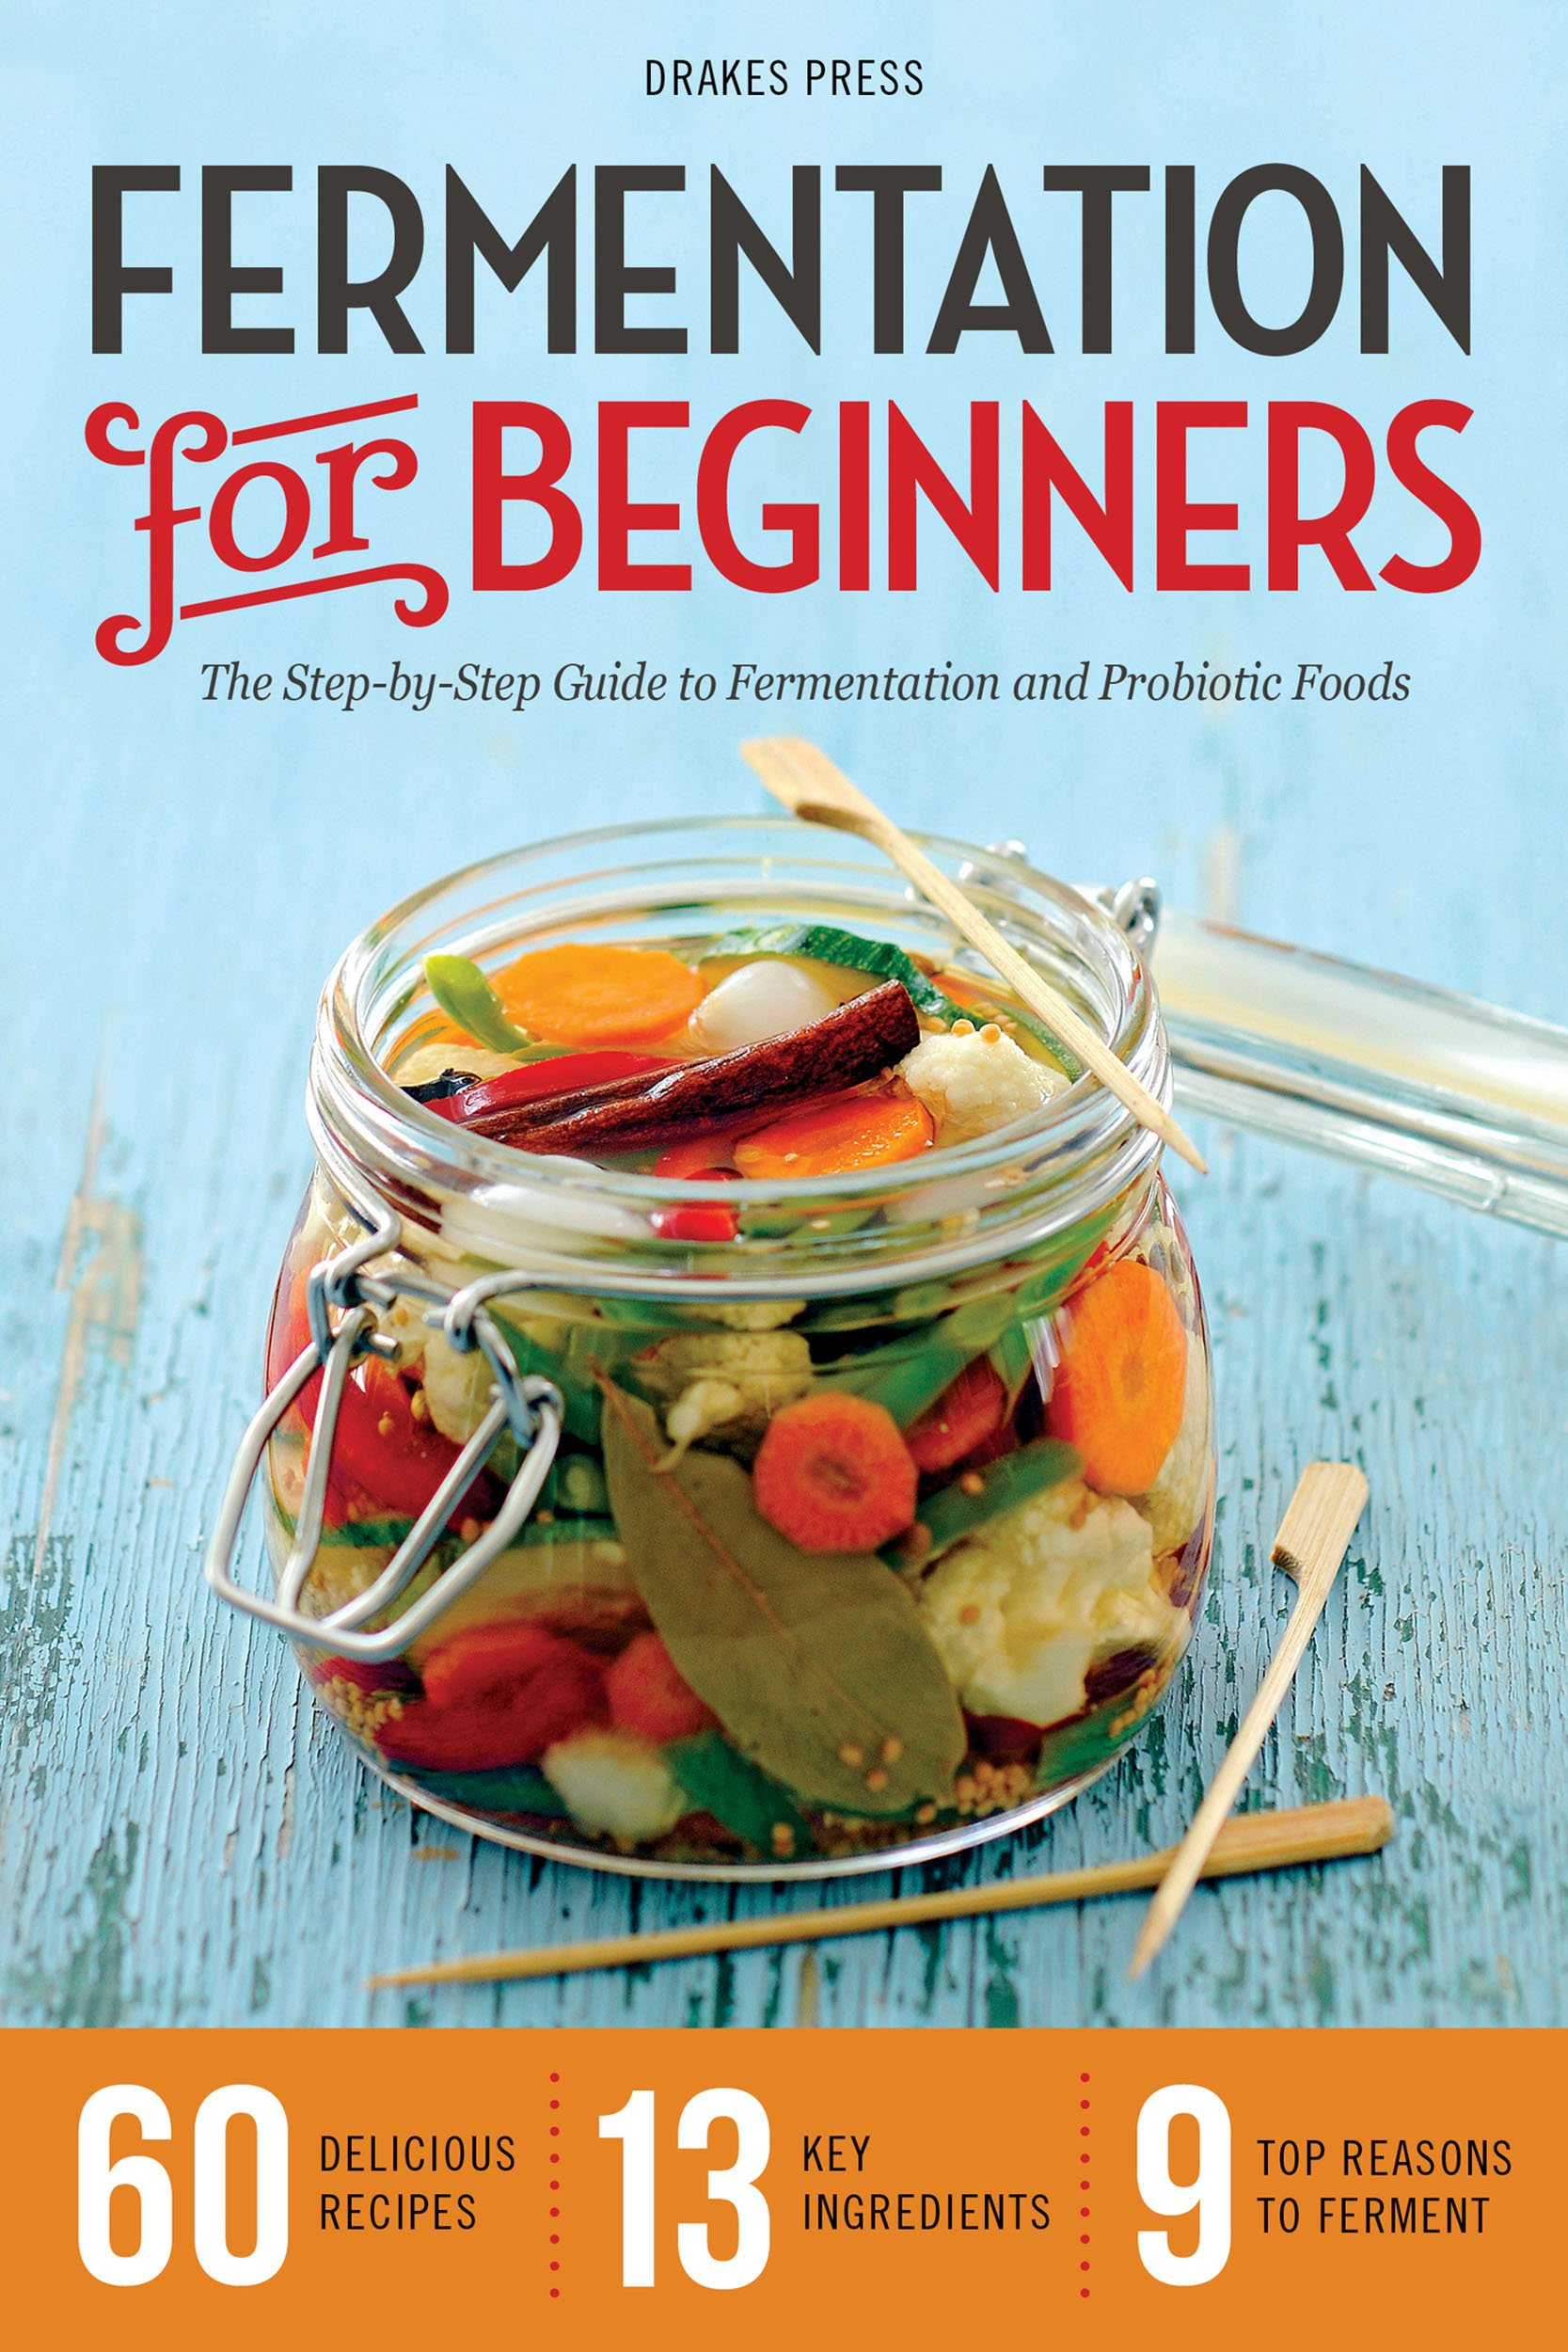 Fermentation for Beginners: The Step-by-Step Guide to Fermentation and  Probiotic Foods: Amazon.co.uk: Drakes Press: 9781623152567: Books